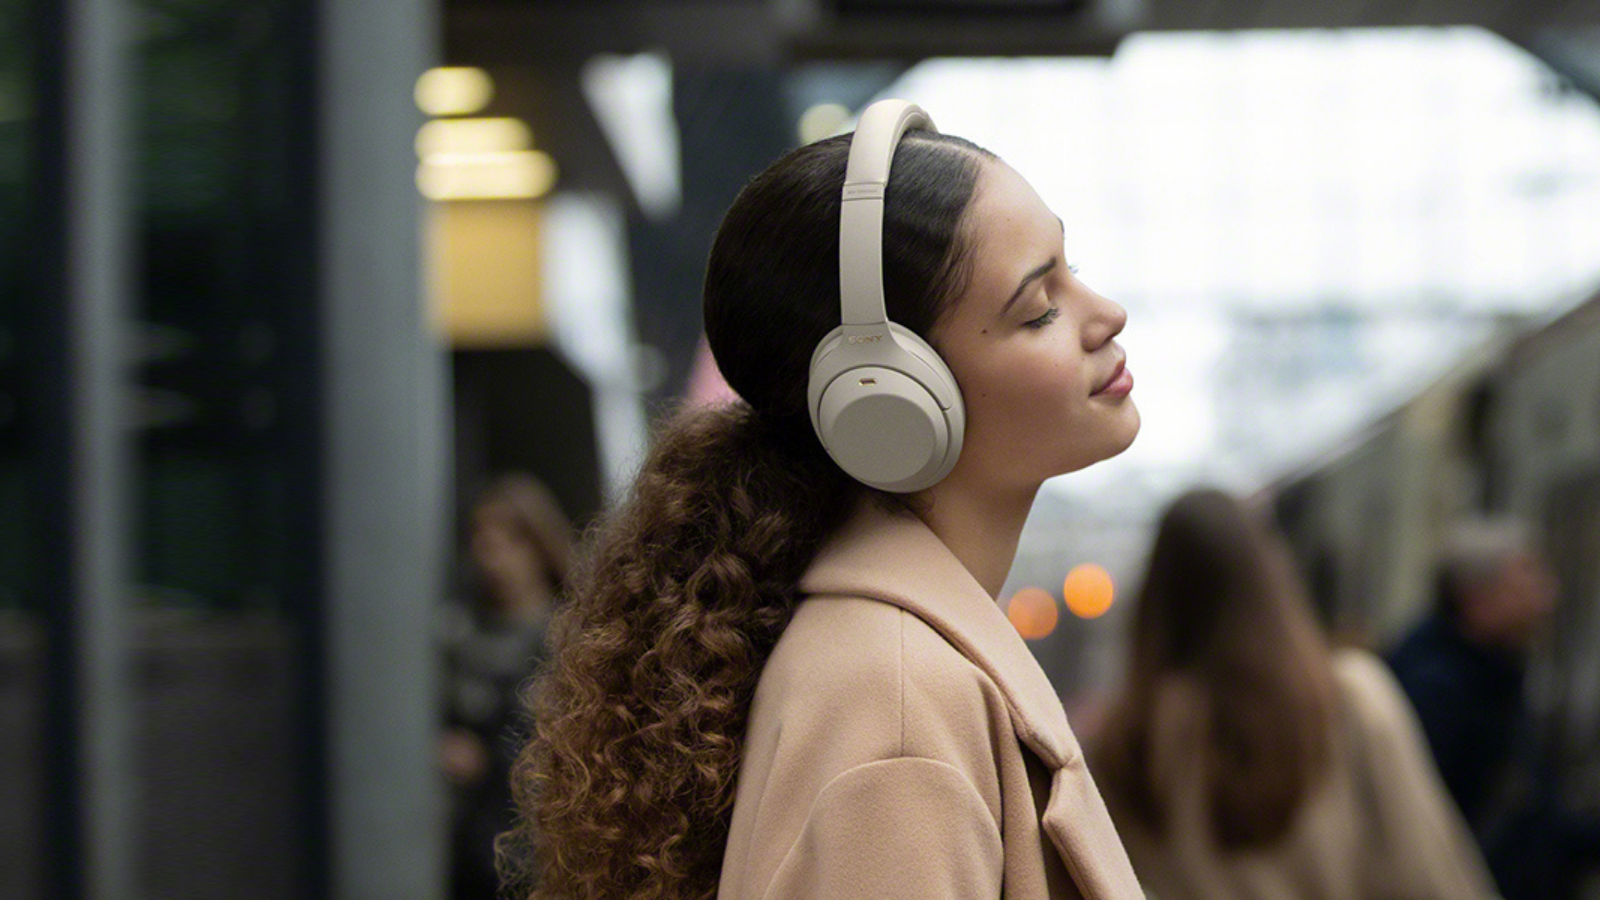 Soothe your mind with the smooth beats of Sony WH1000XM4 Wireless Headphones